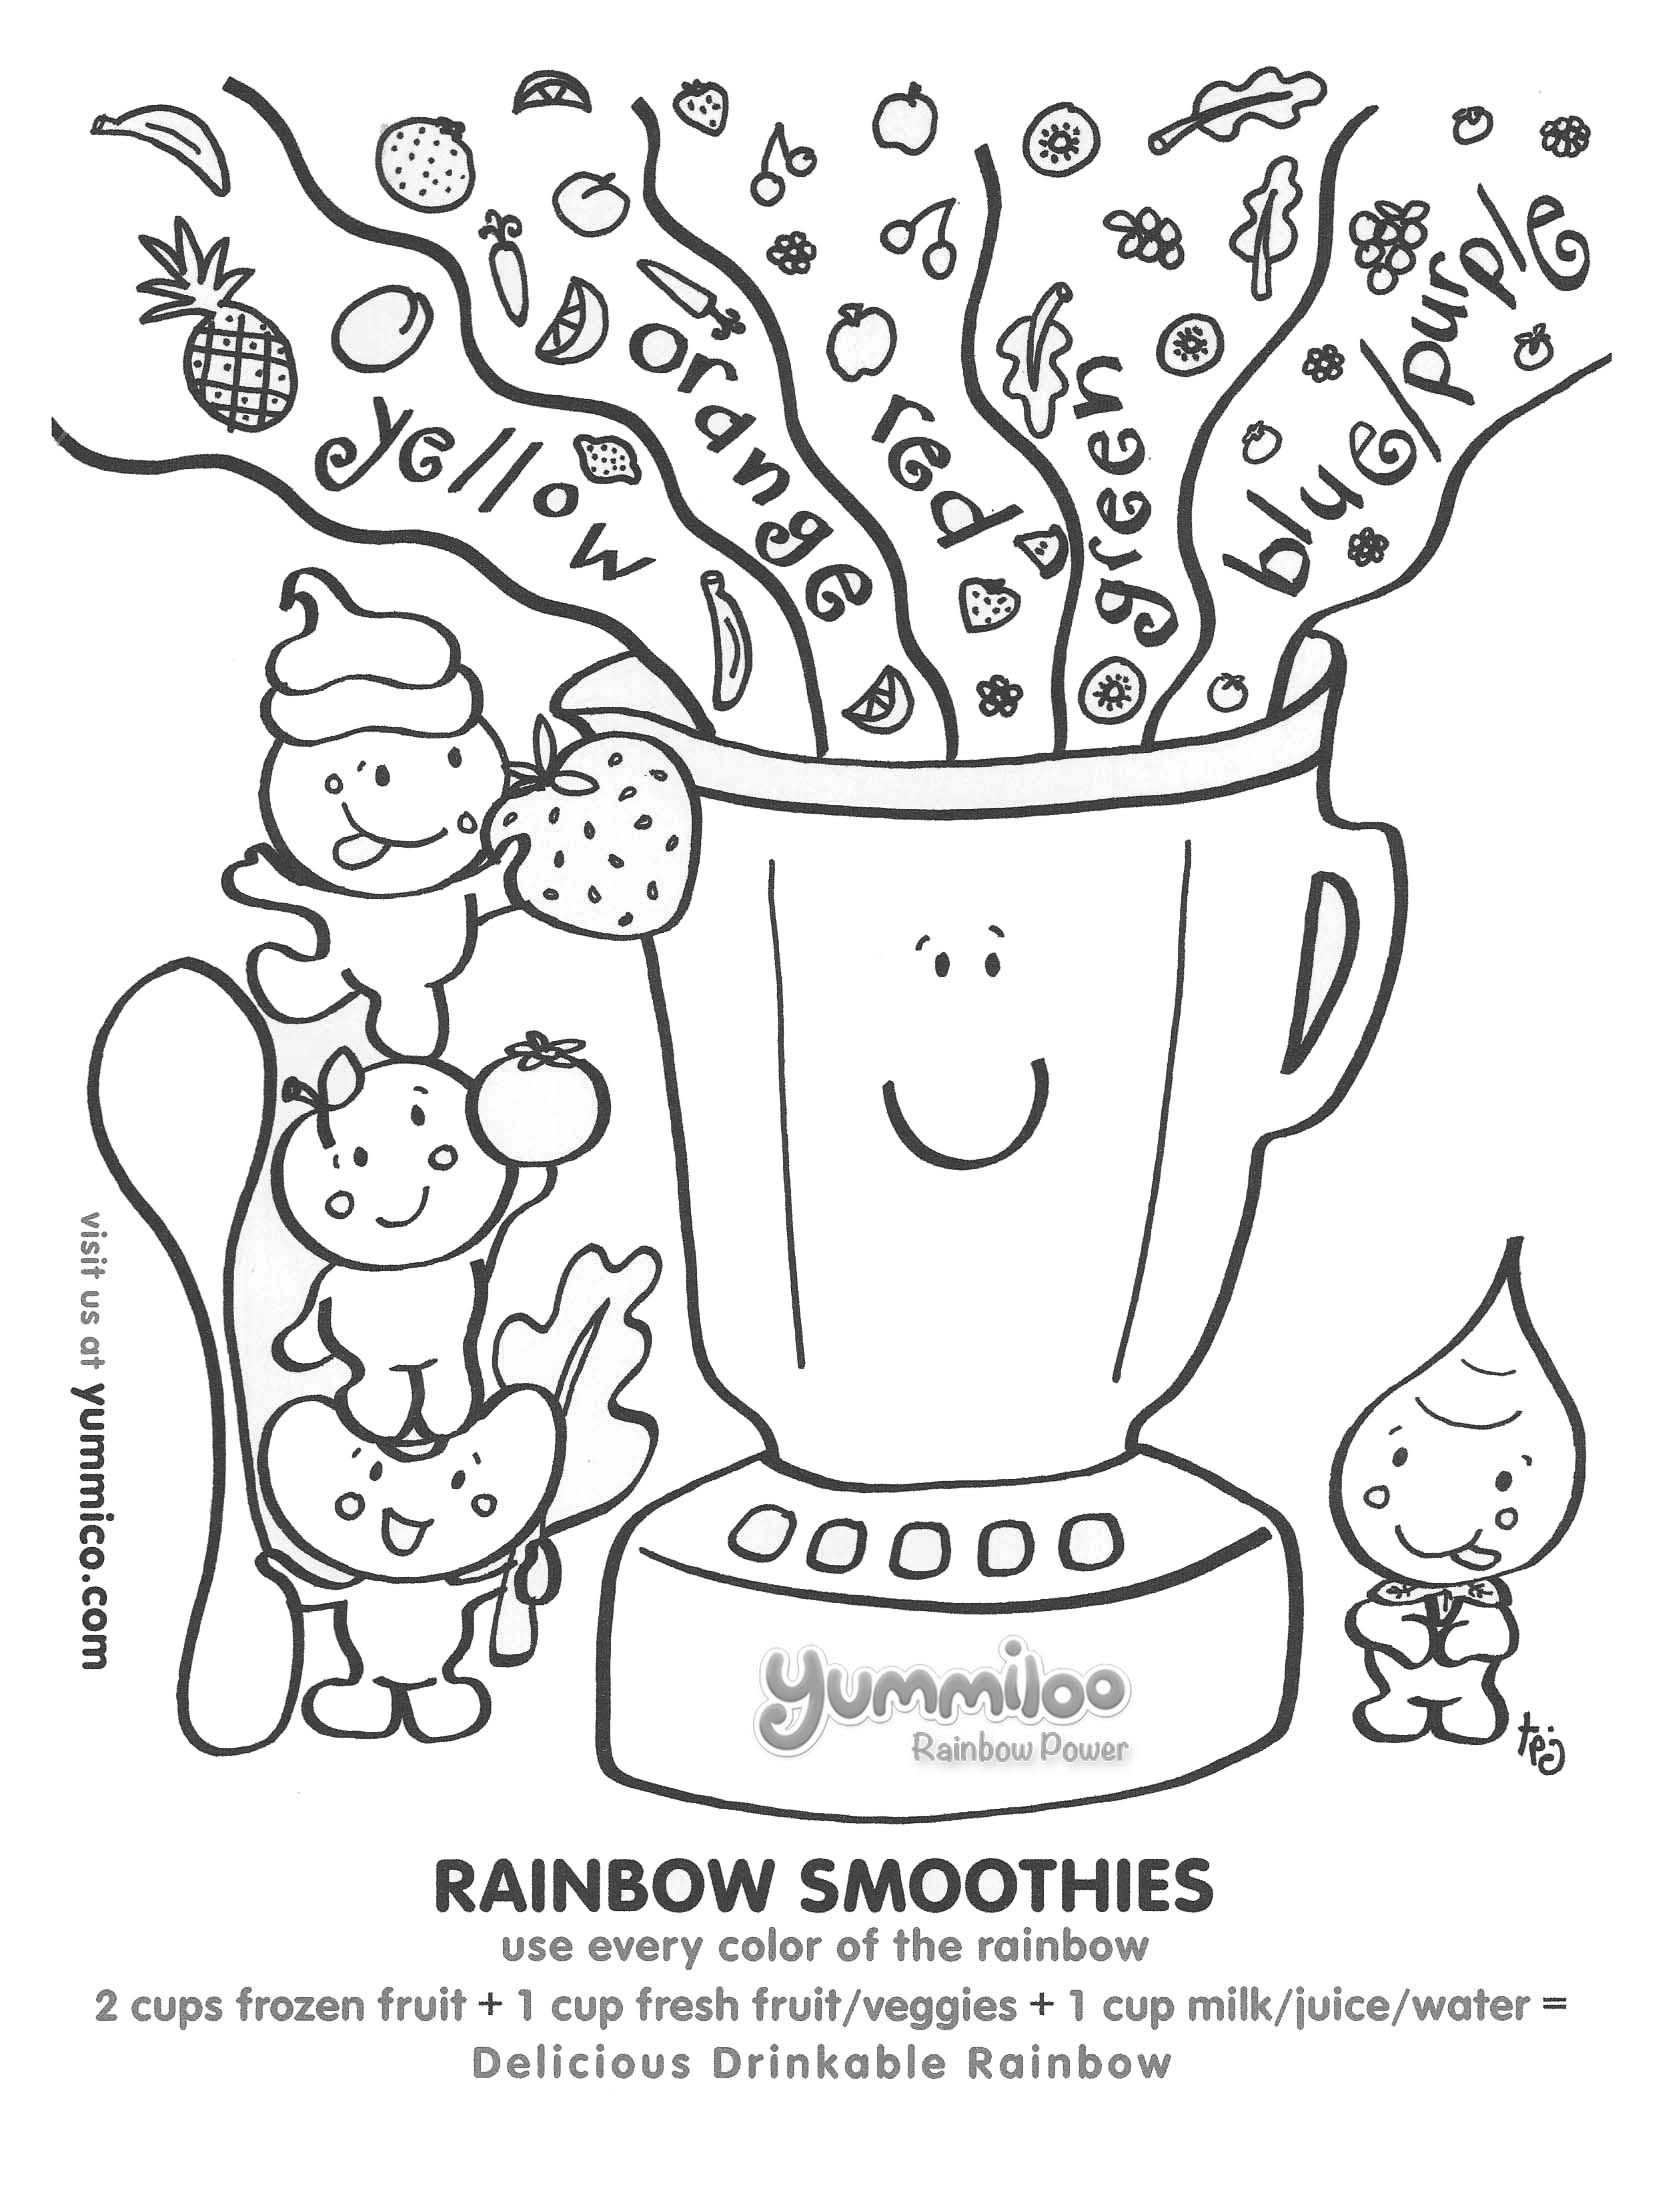 Yummiloo Rainbow Smoothies Worksheet Cute